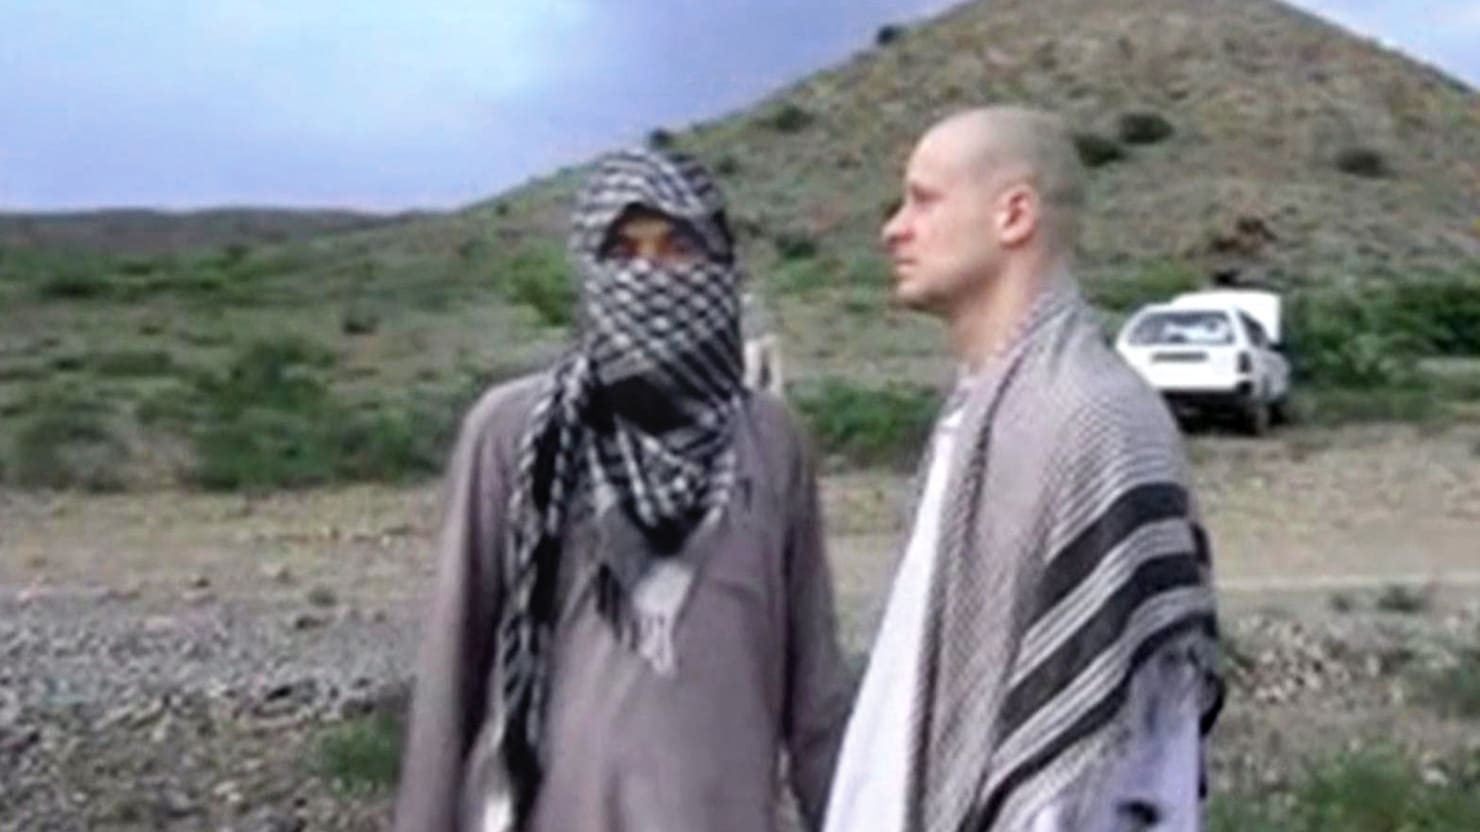 The Real Reason the U.S. Didn't Rescue Bowe Bergdahl